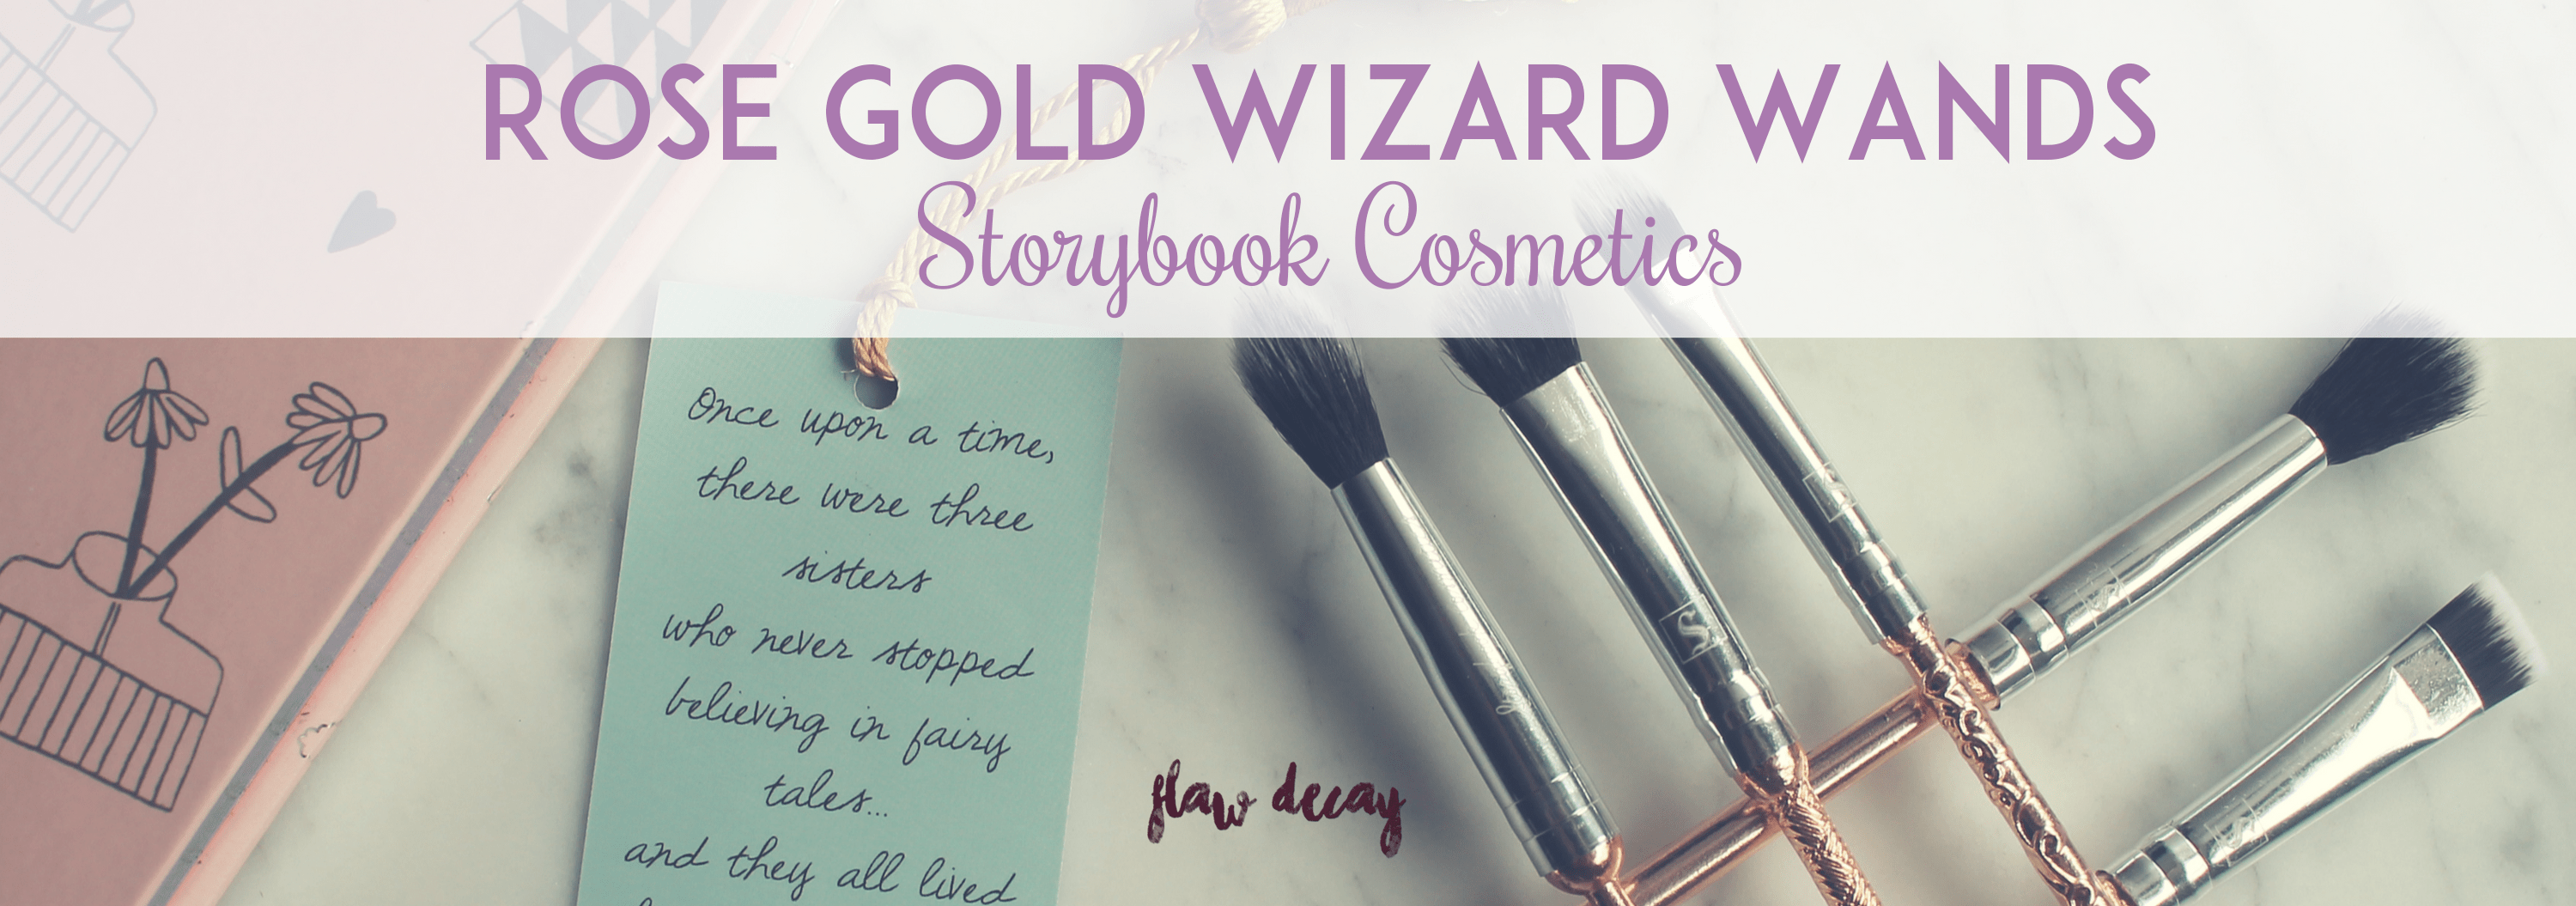 Rose Gold Wizard Wands de Storybook Cosmetics